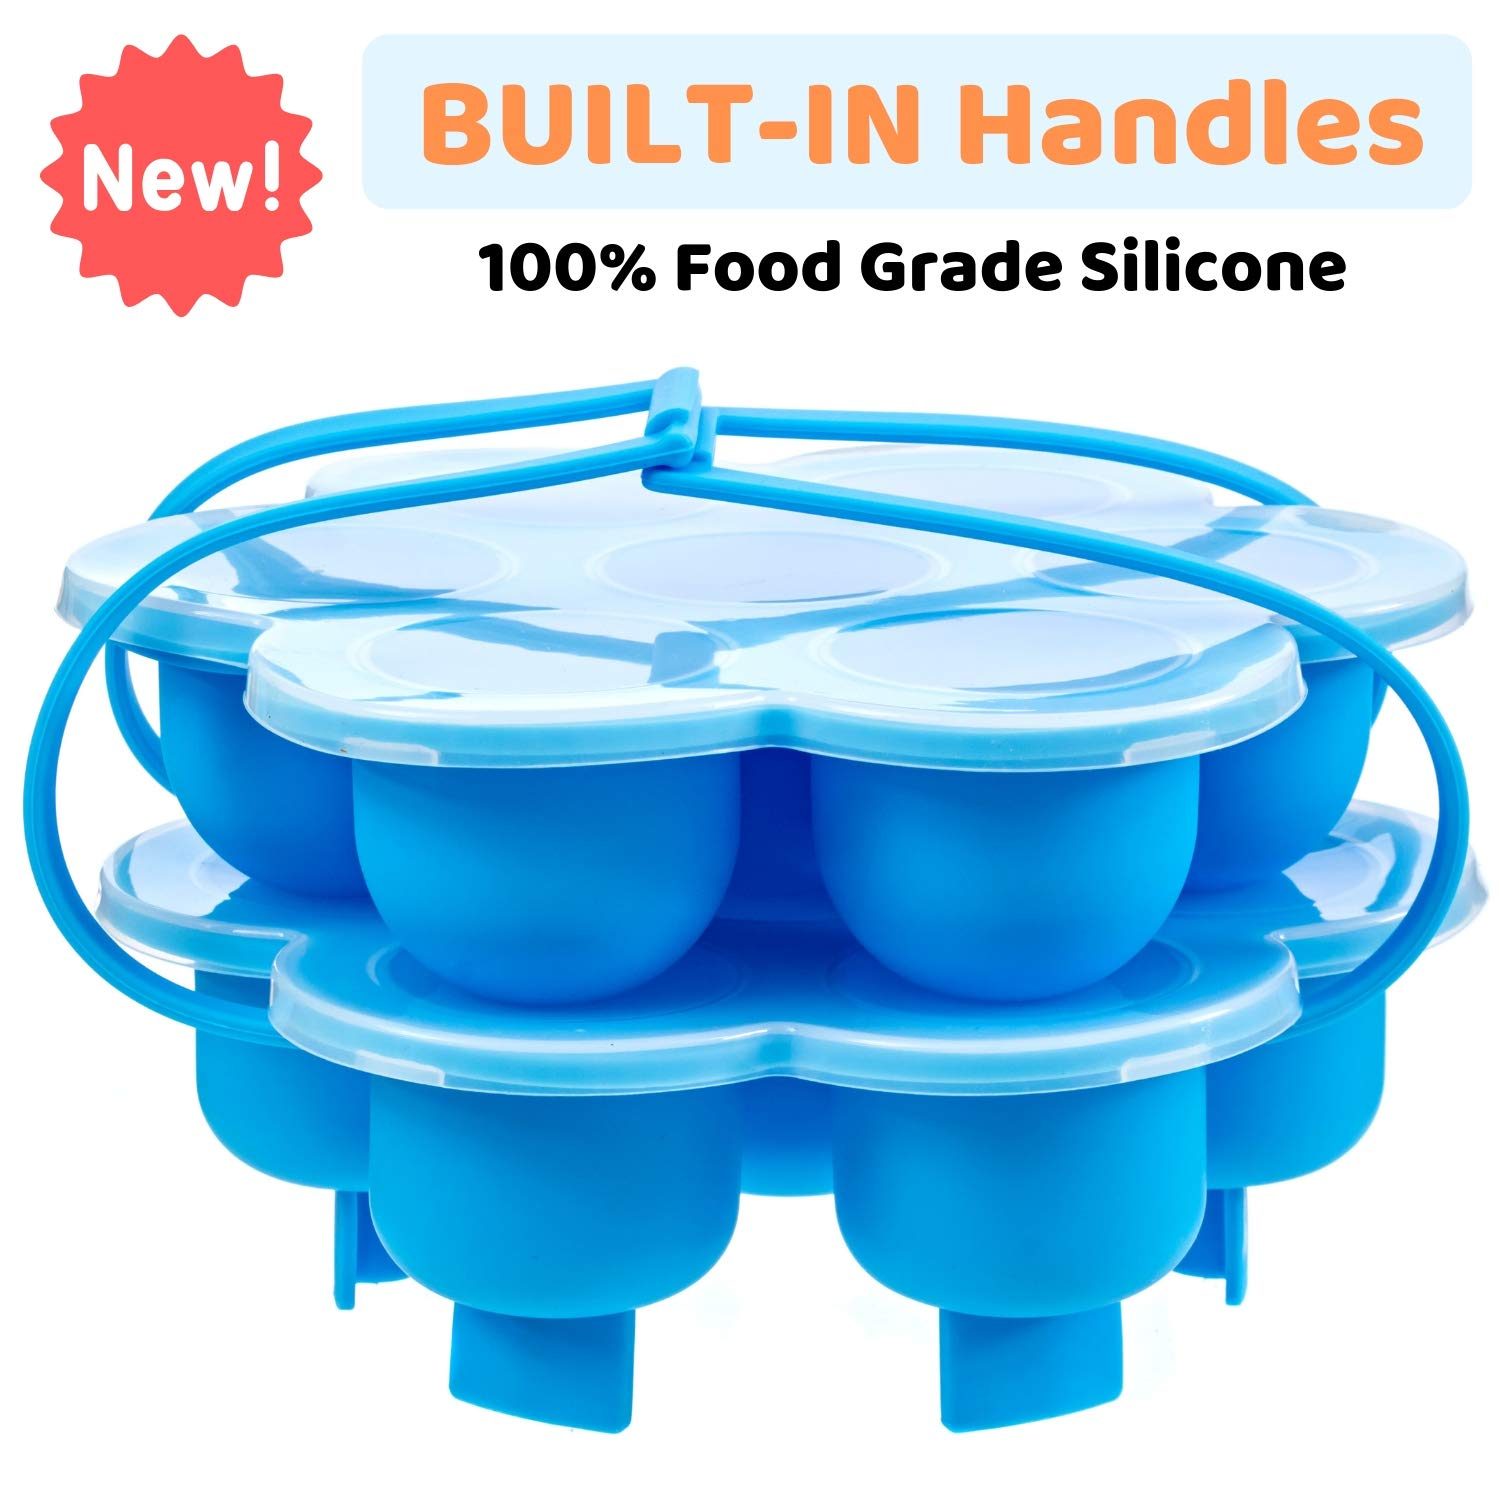 Silicone Egg Bites Molds For Instant Pot